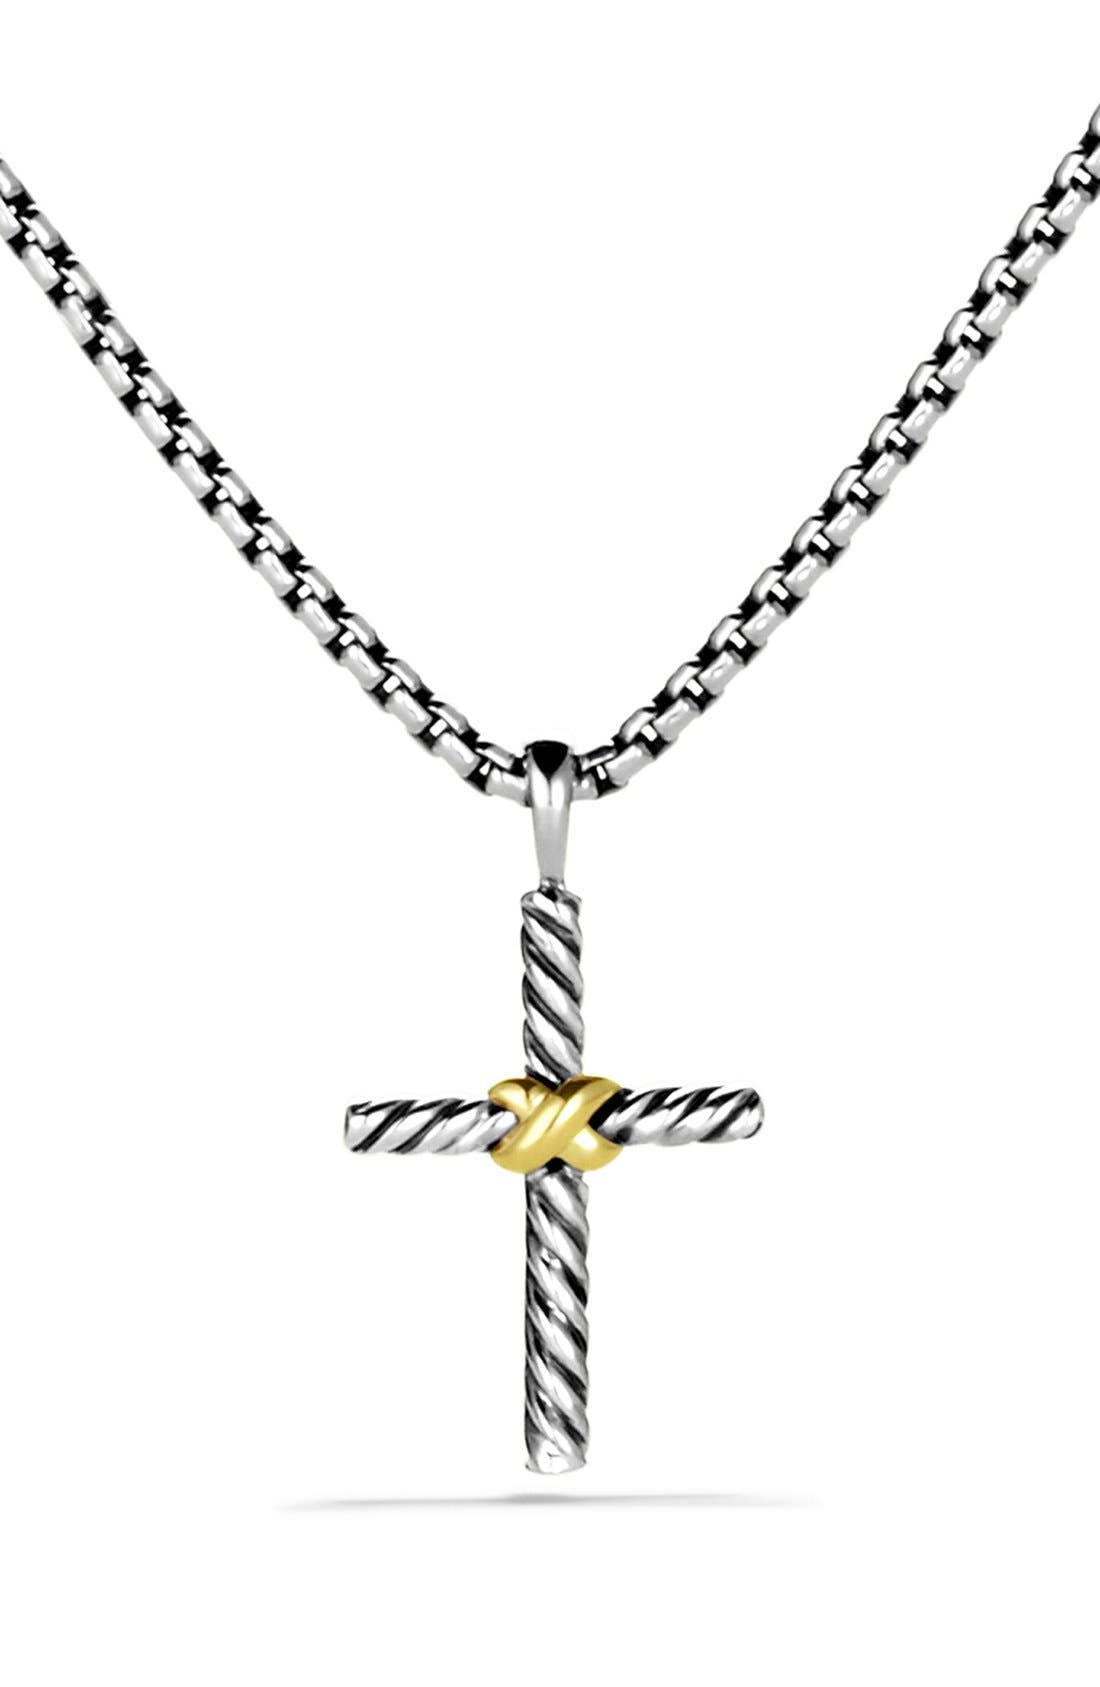 David Yurman 'X' Cross with Gold on Chain